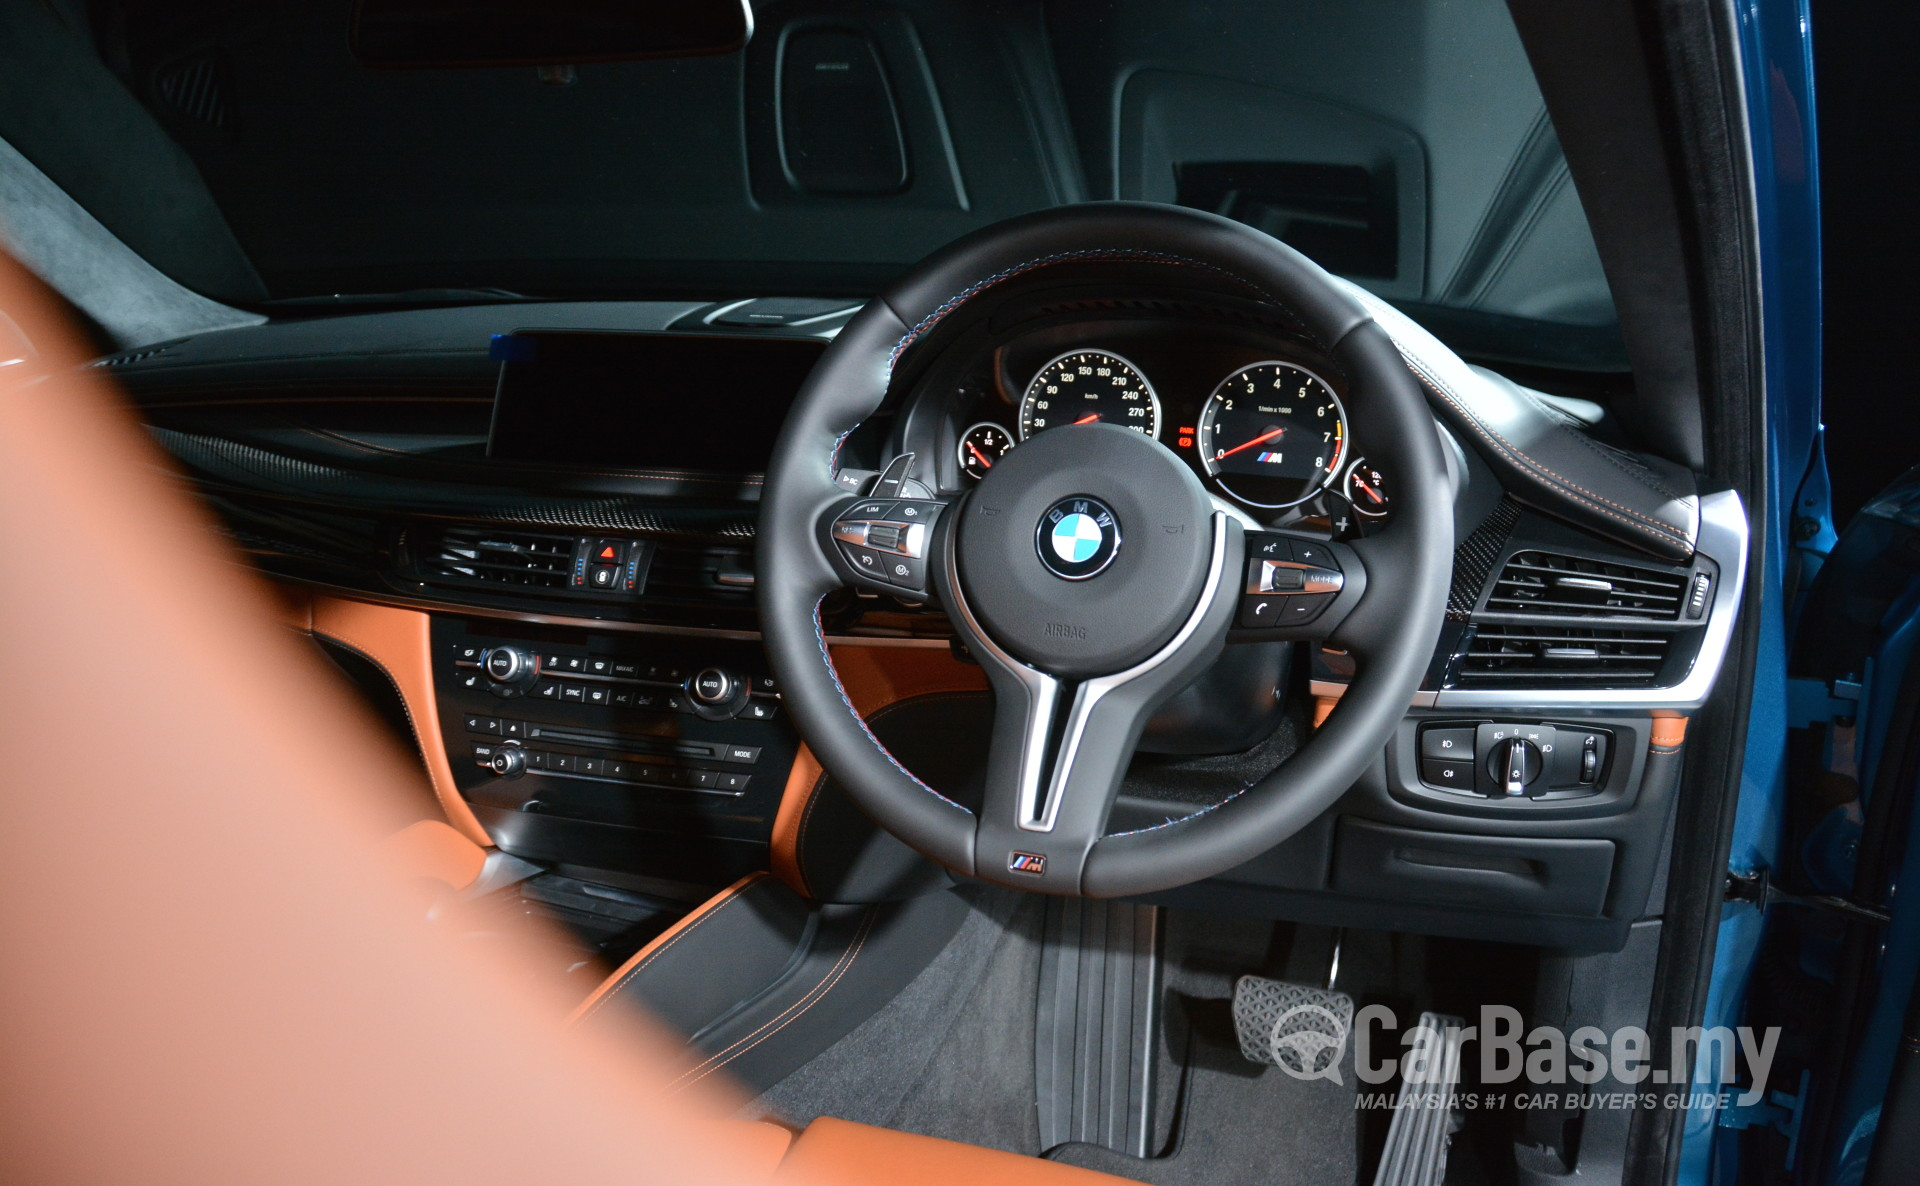 Bmw X6 M F86 2015 Interior Image 24779 In Malaysia Reviews